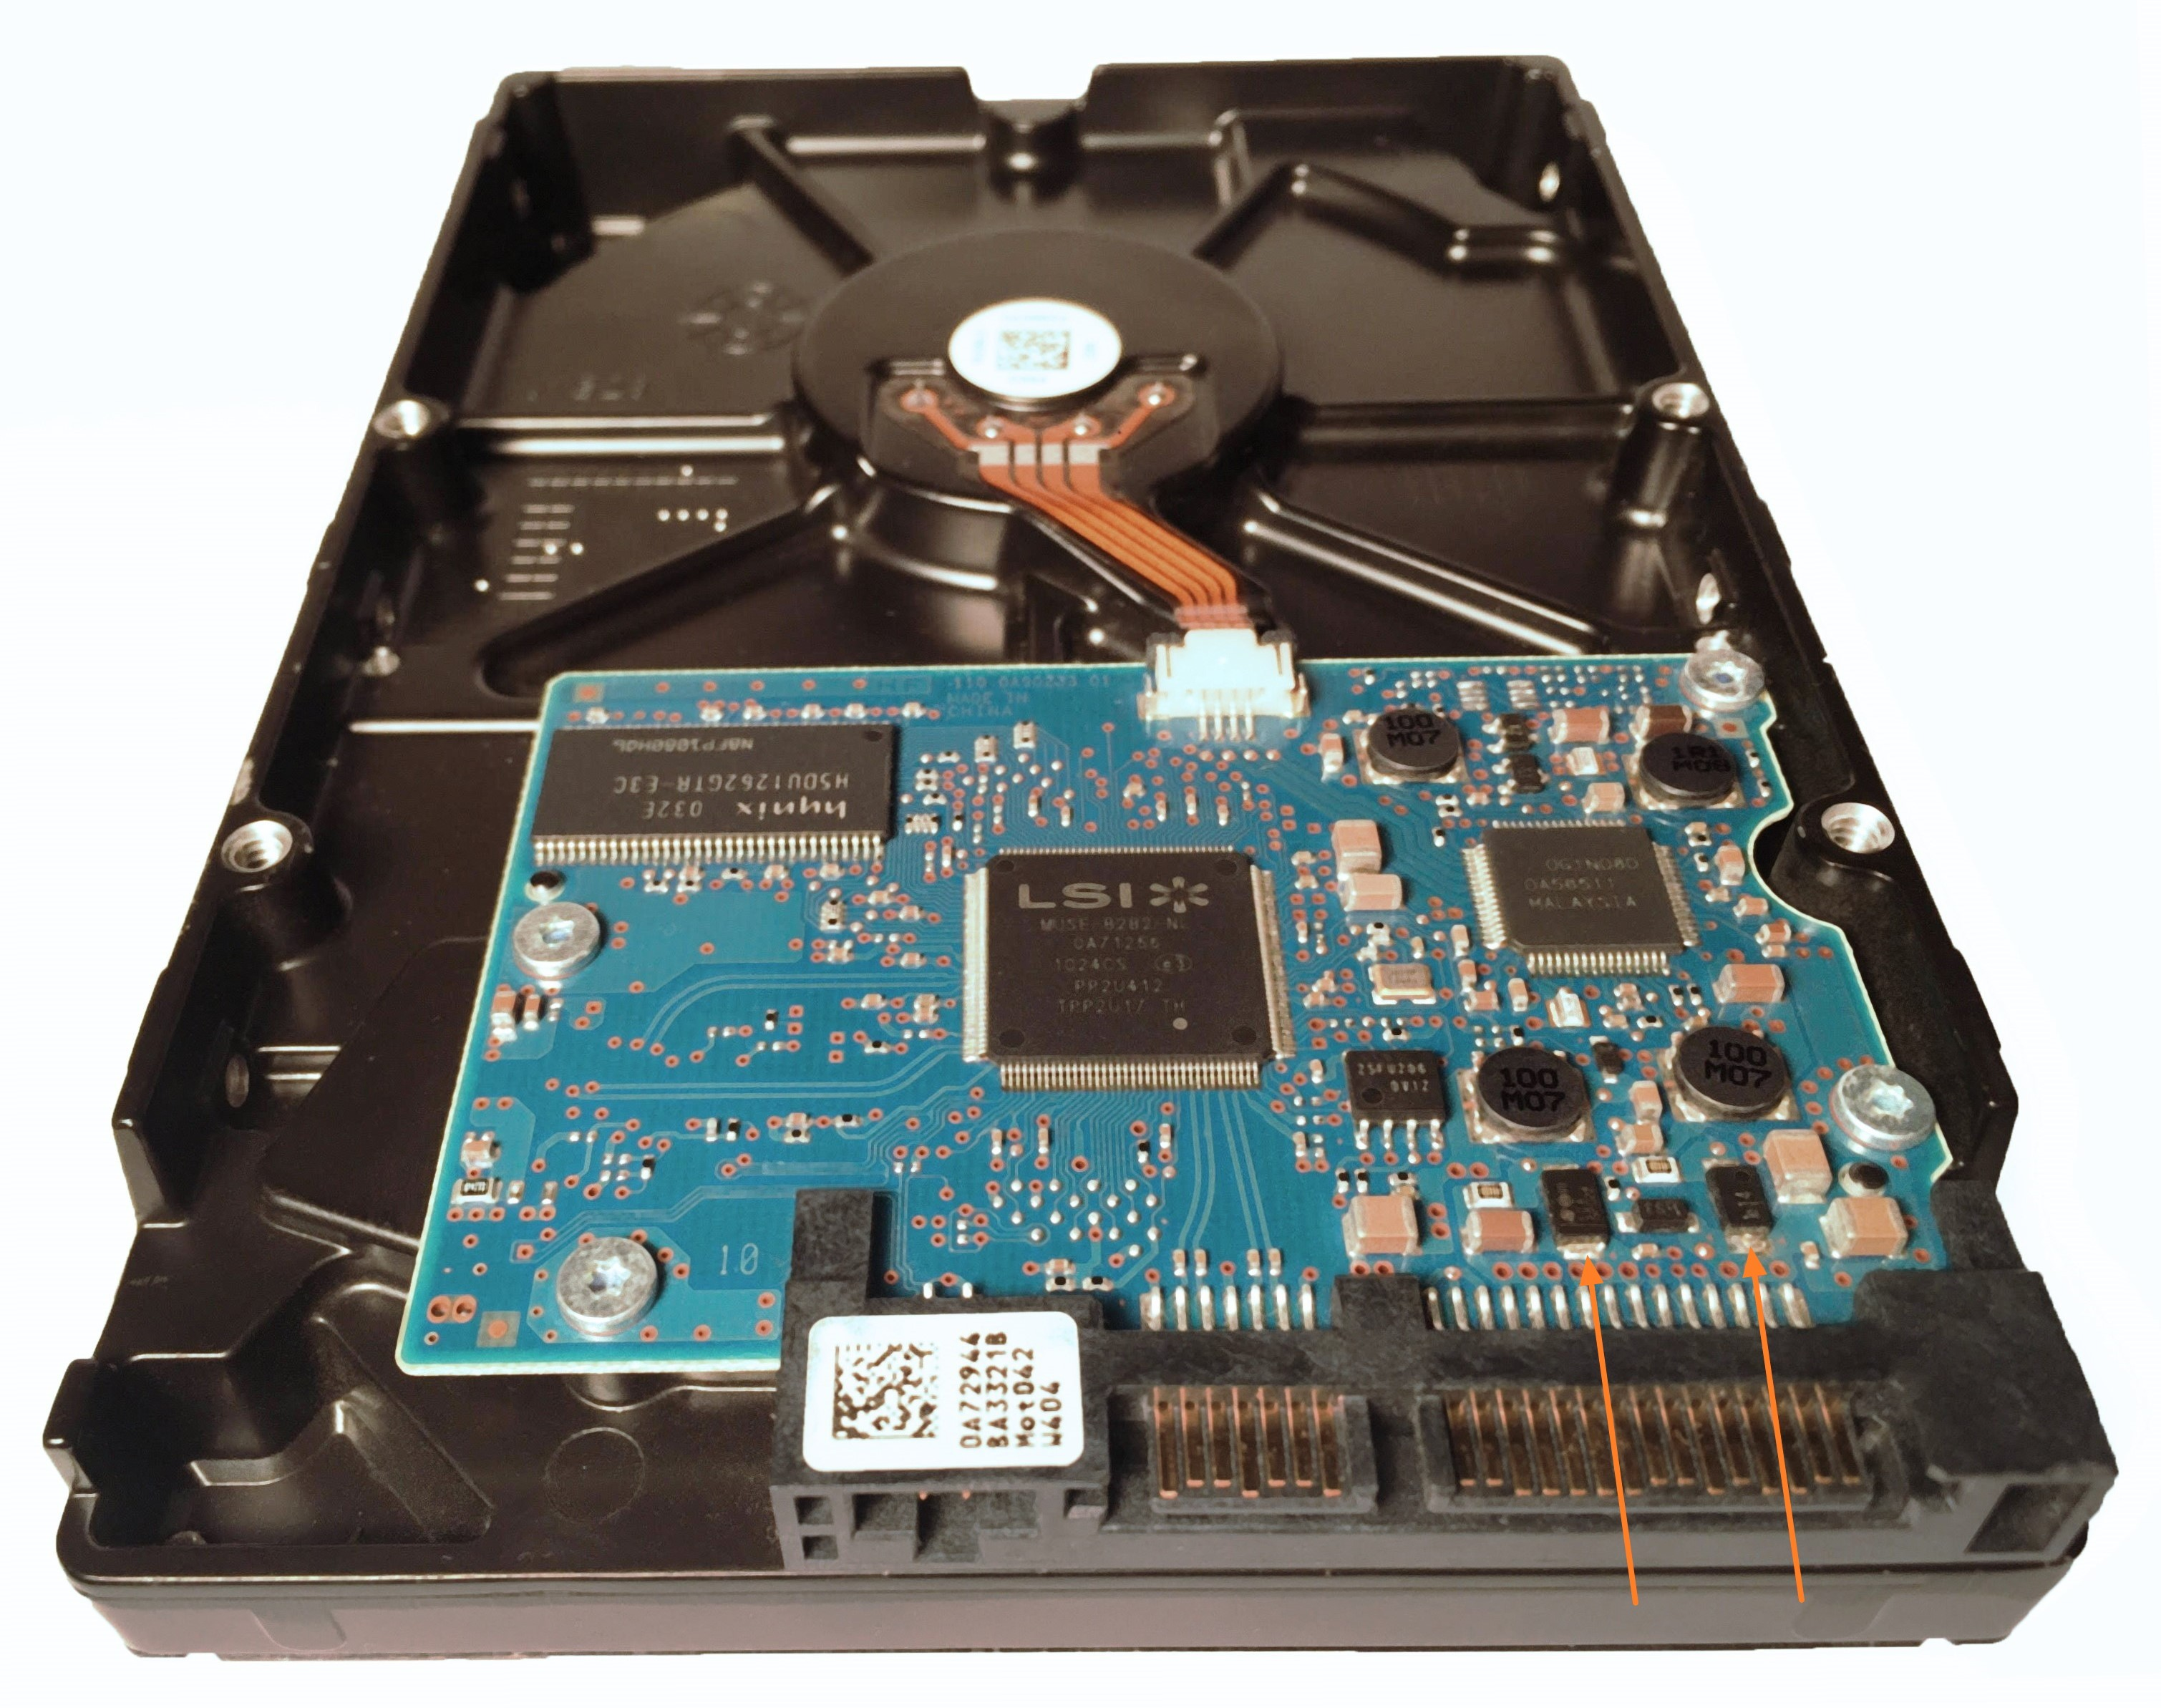 Schematic for Usb2.0 to Sata 14680 Hdd Adapter atola Taskforce Manual Of Schematic for Usb2.0 to Sata 14680 Hdd Adapter